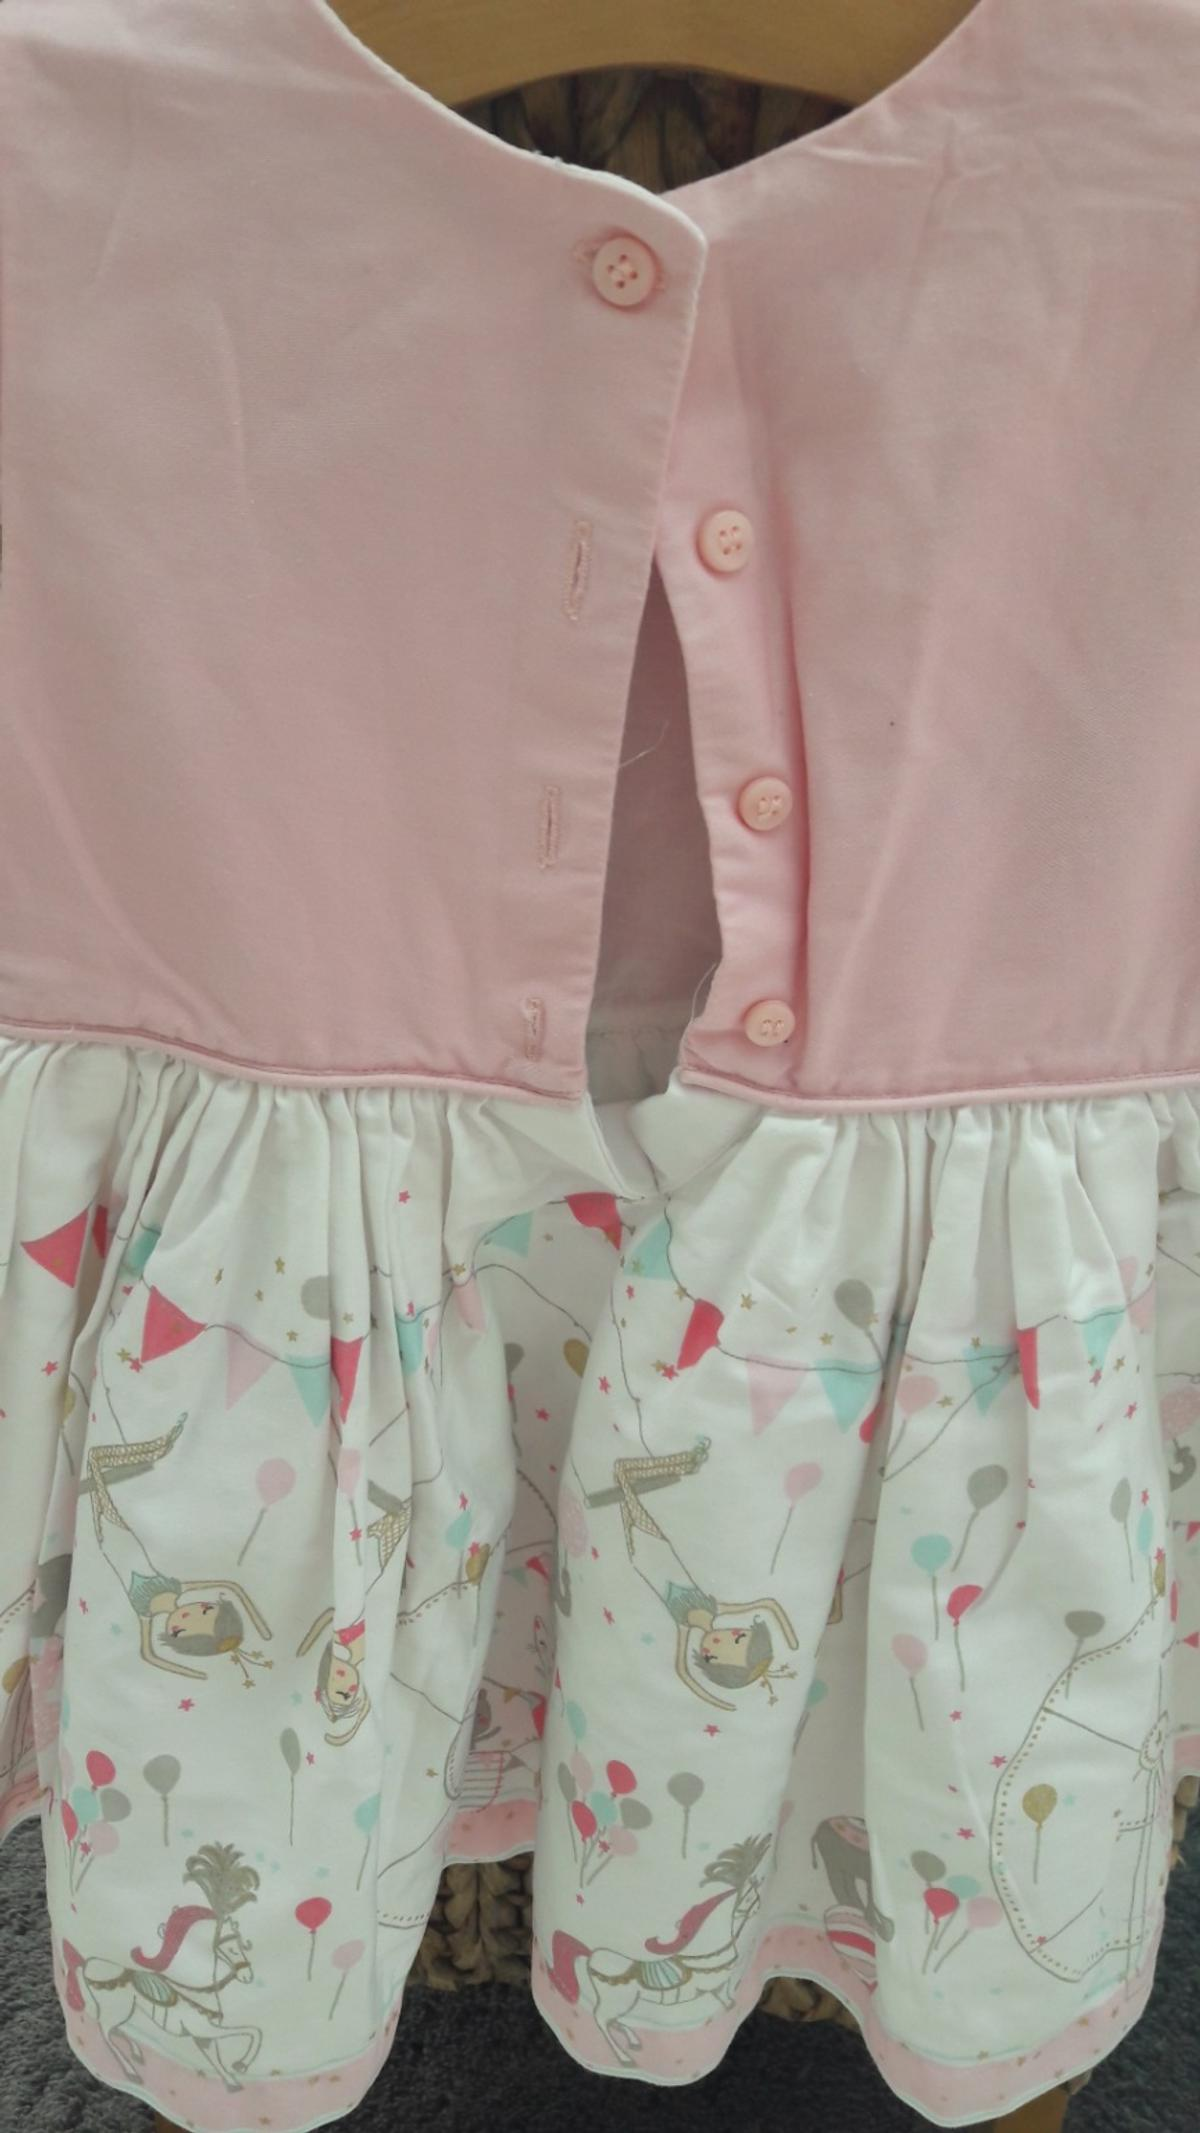 Beautiful little girls summer dress Baby pink and white with animals and the circus on. Fully lined. Beautiful colours.. Fantastic condition Aged 18-24 months. Paid £29 Only worn once Willing to accept £9 NO OFFERS PLEASE THANKS Check out my other items i have lots of beautiful little girls dresses 👧👼👩👵 Thanks